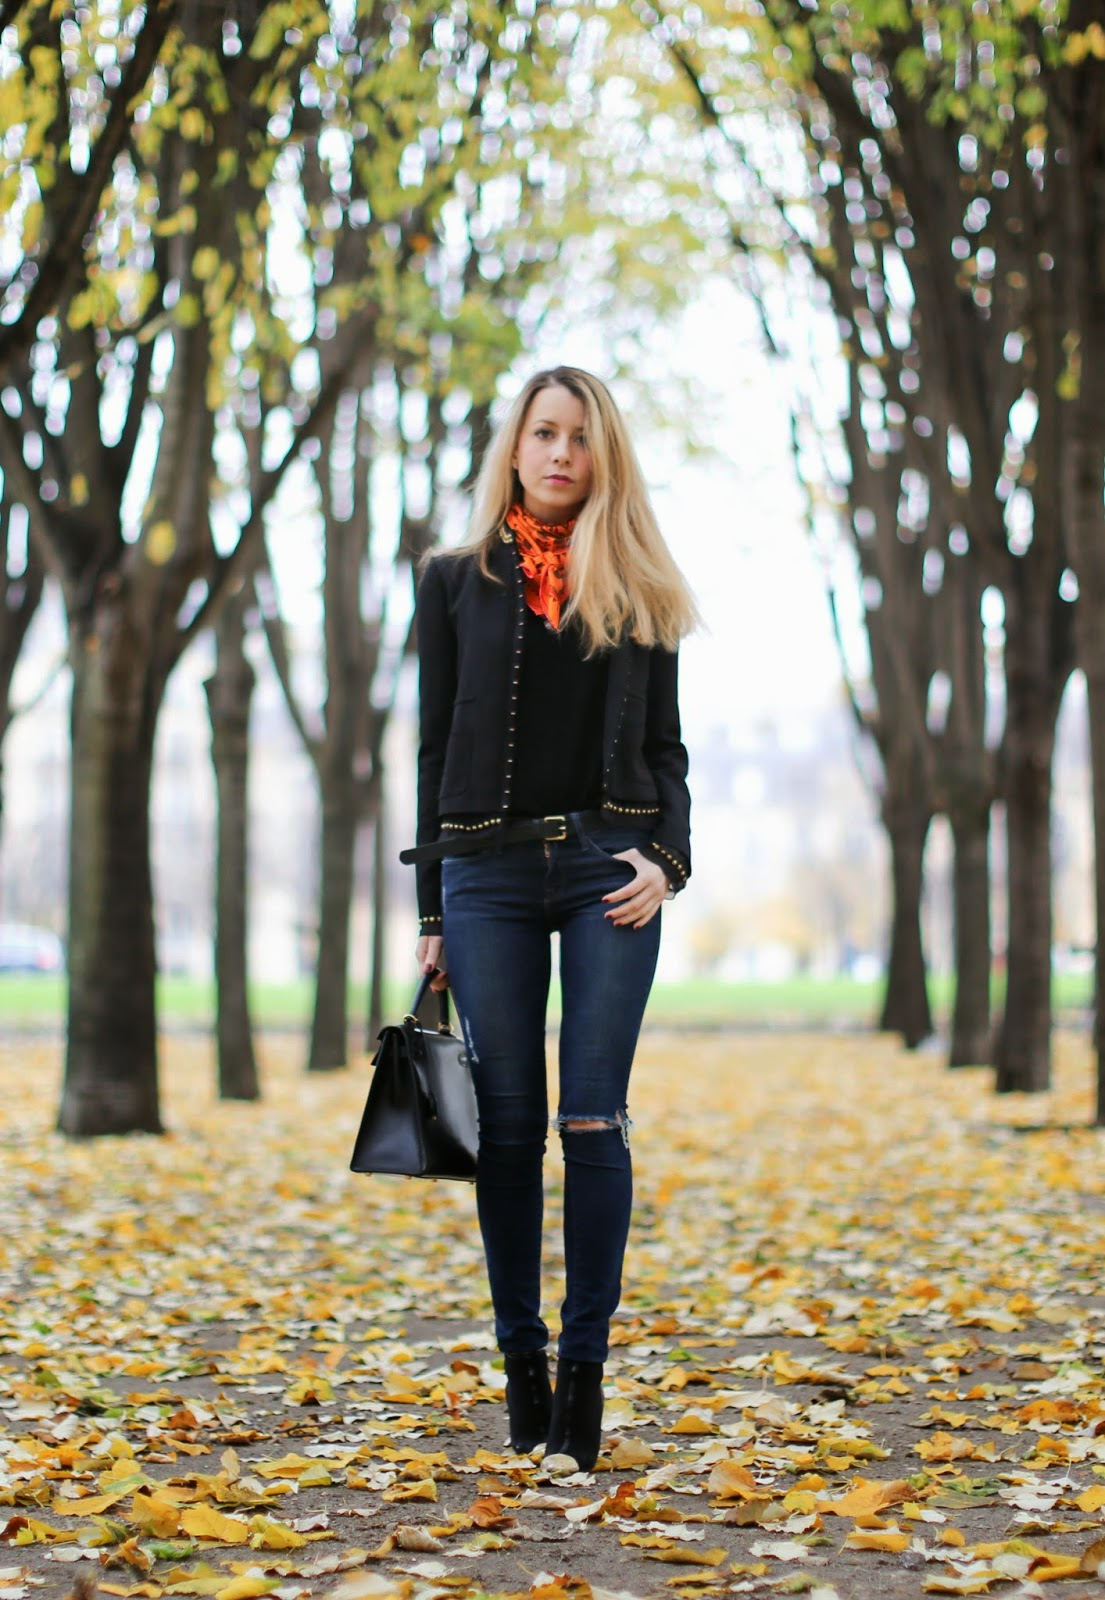 Hermès, hermès scarf, frame denim, vanessa bruno, black and gold, chanel, hermès kelly, fashion blogger, streetstyle